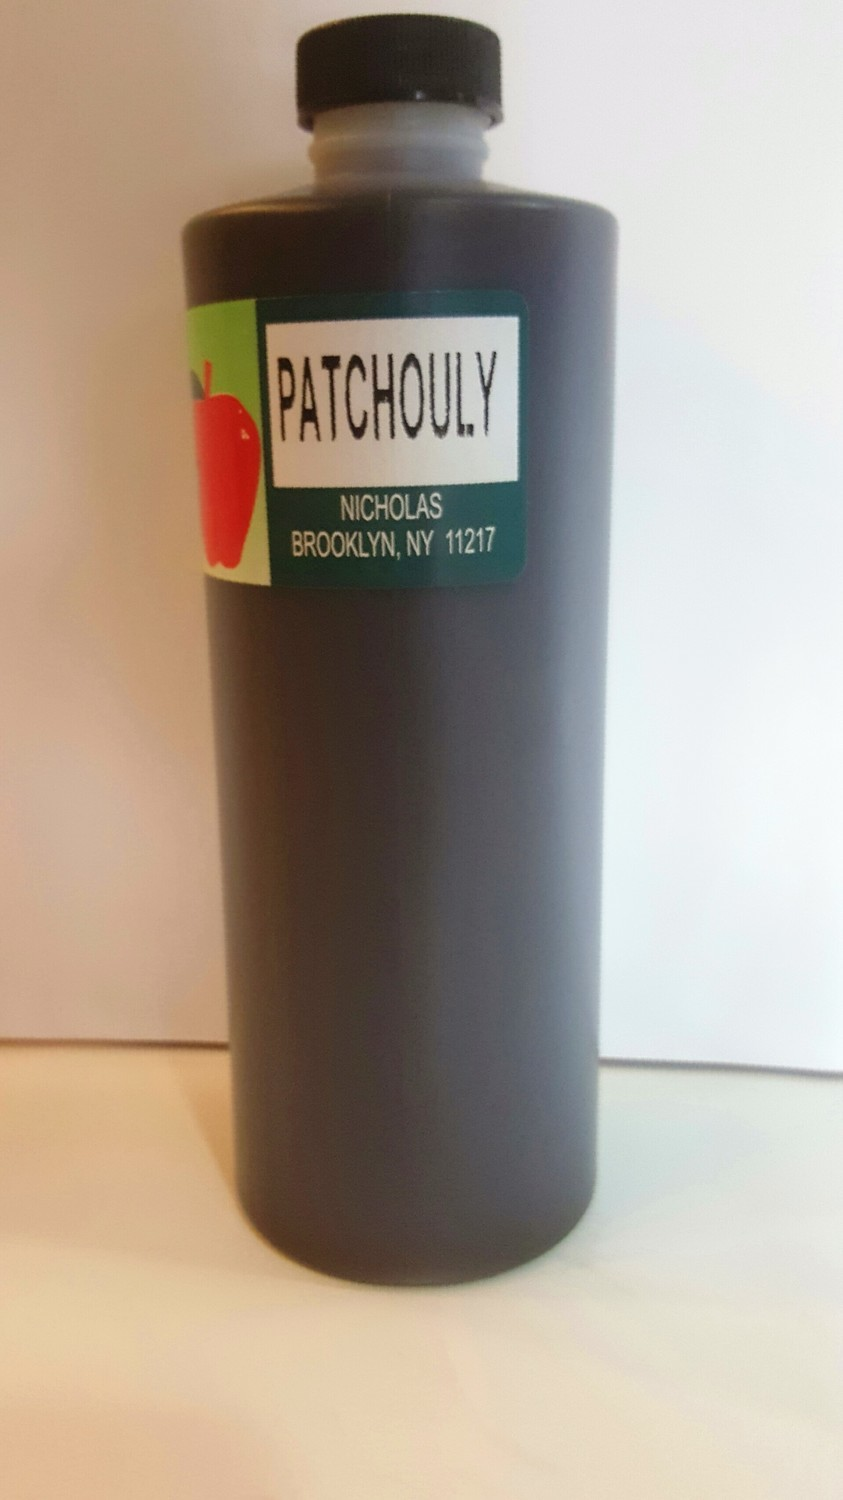 Patchouly Oil